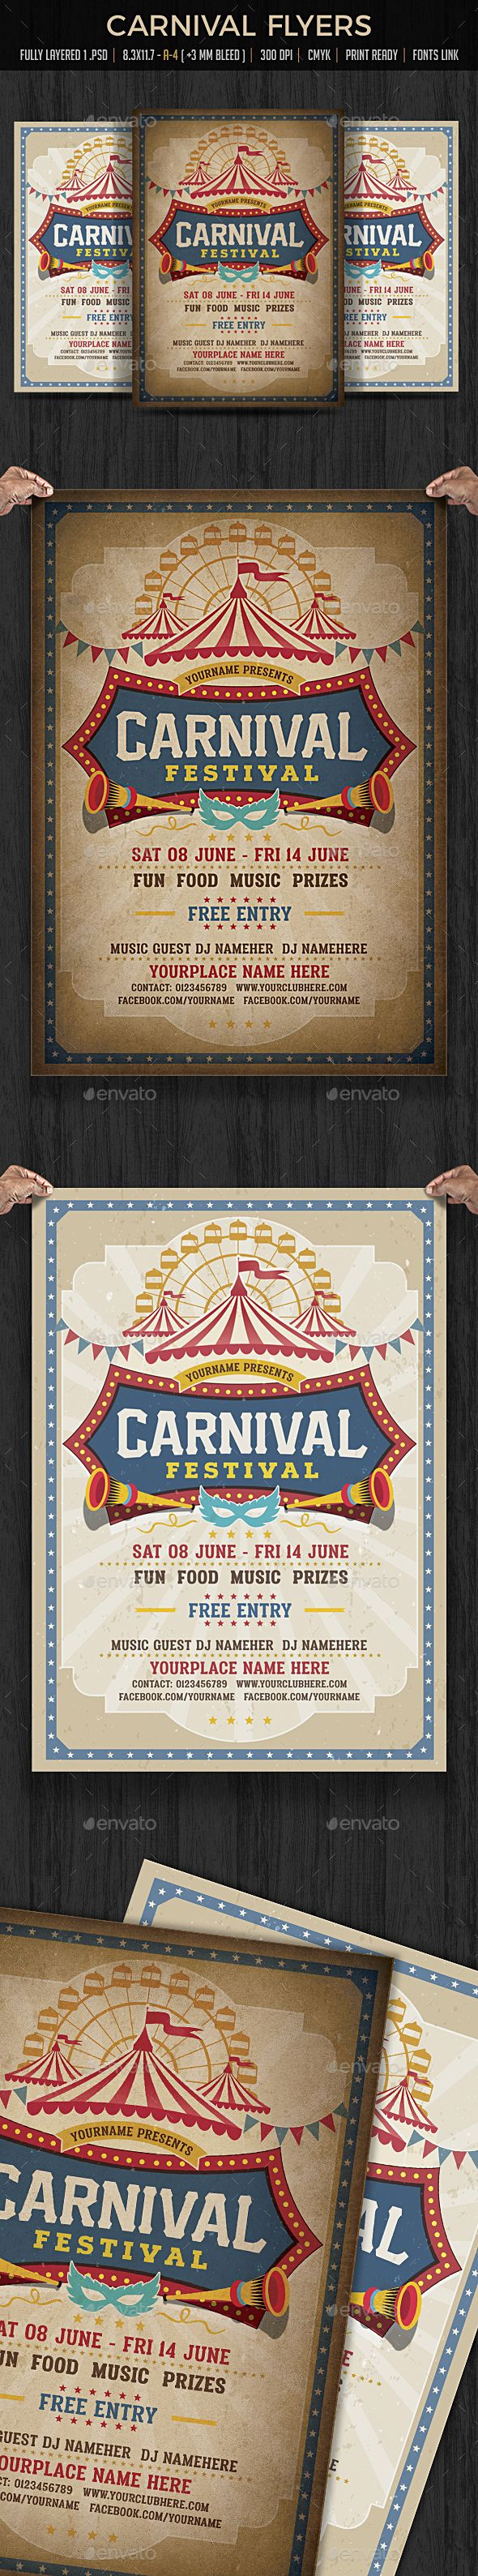 template for carnival flyer ianswer